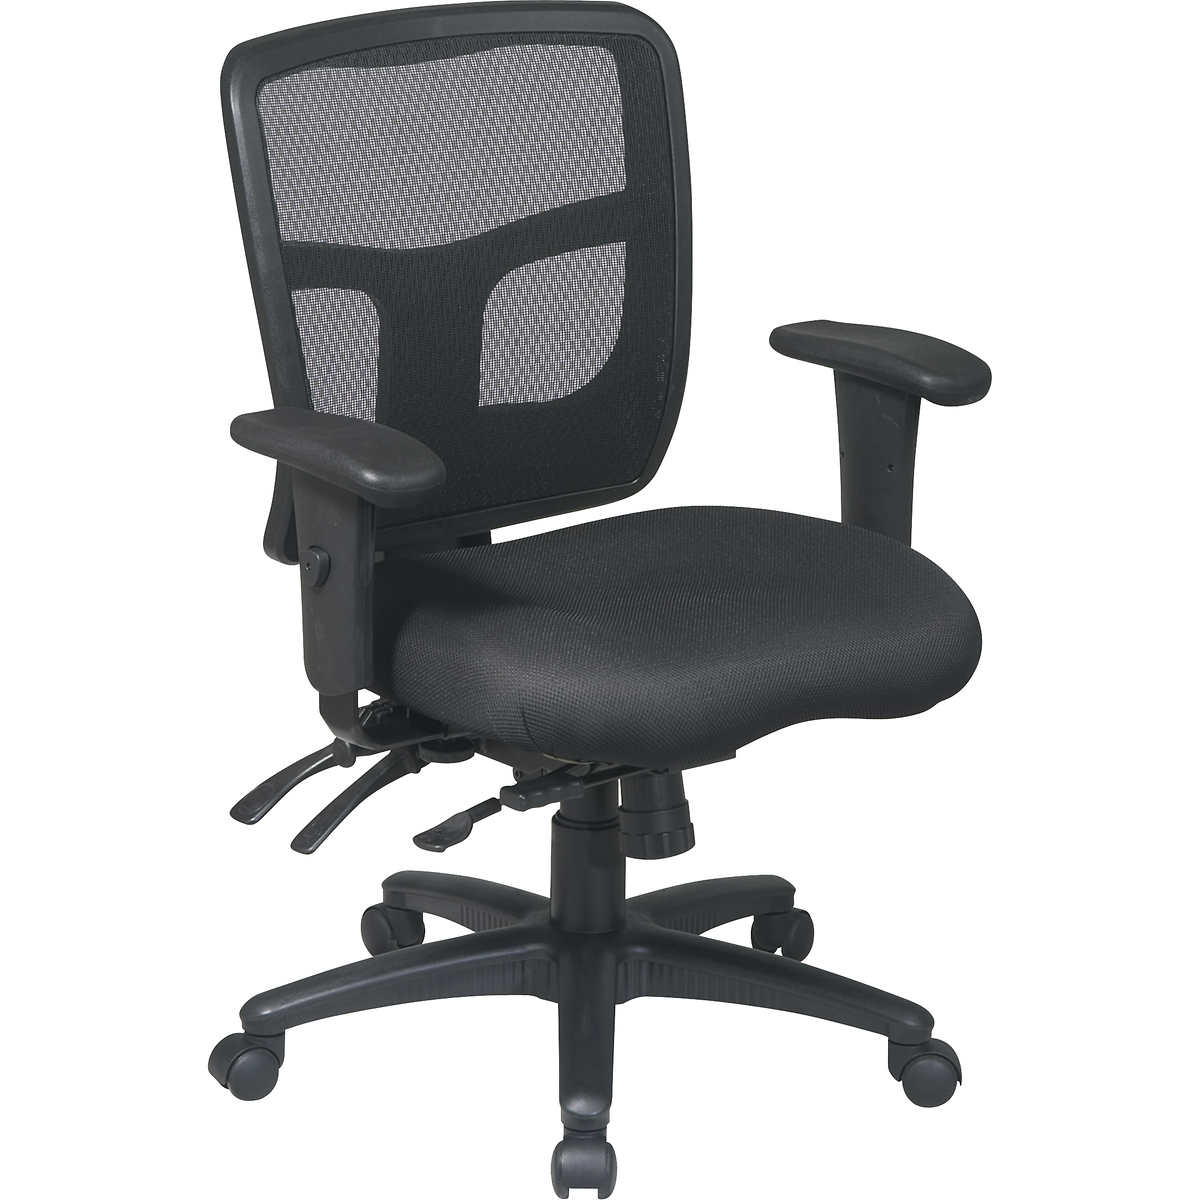 pro-line™ ii deluxe air grid back ergonomic office chair